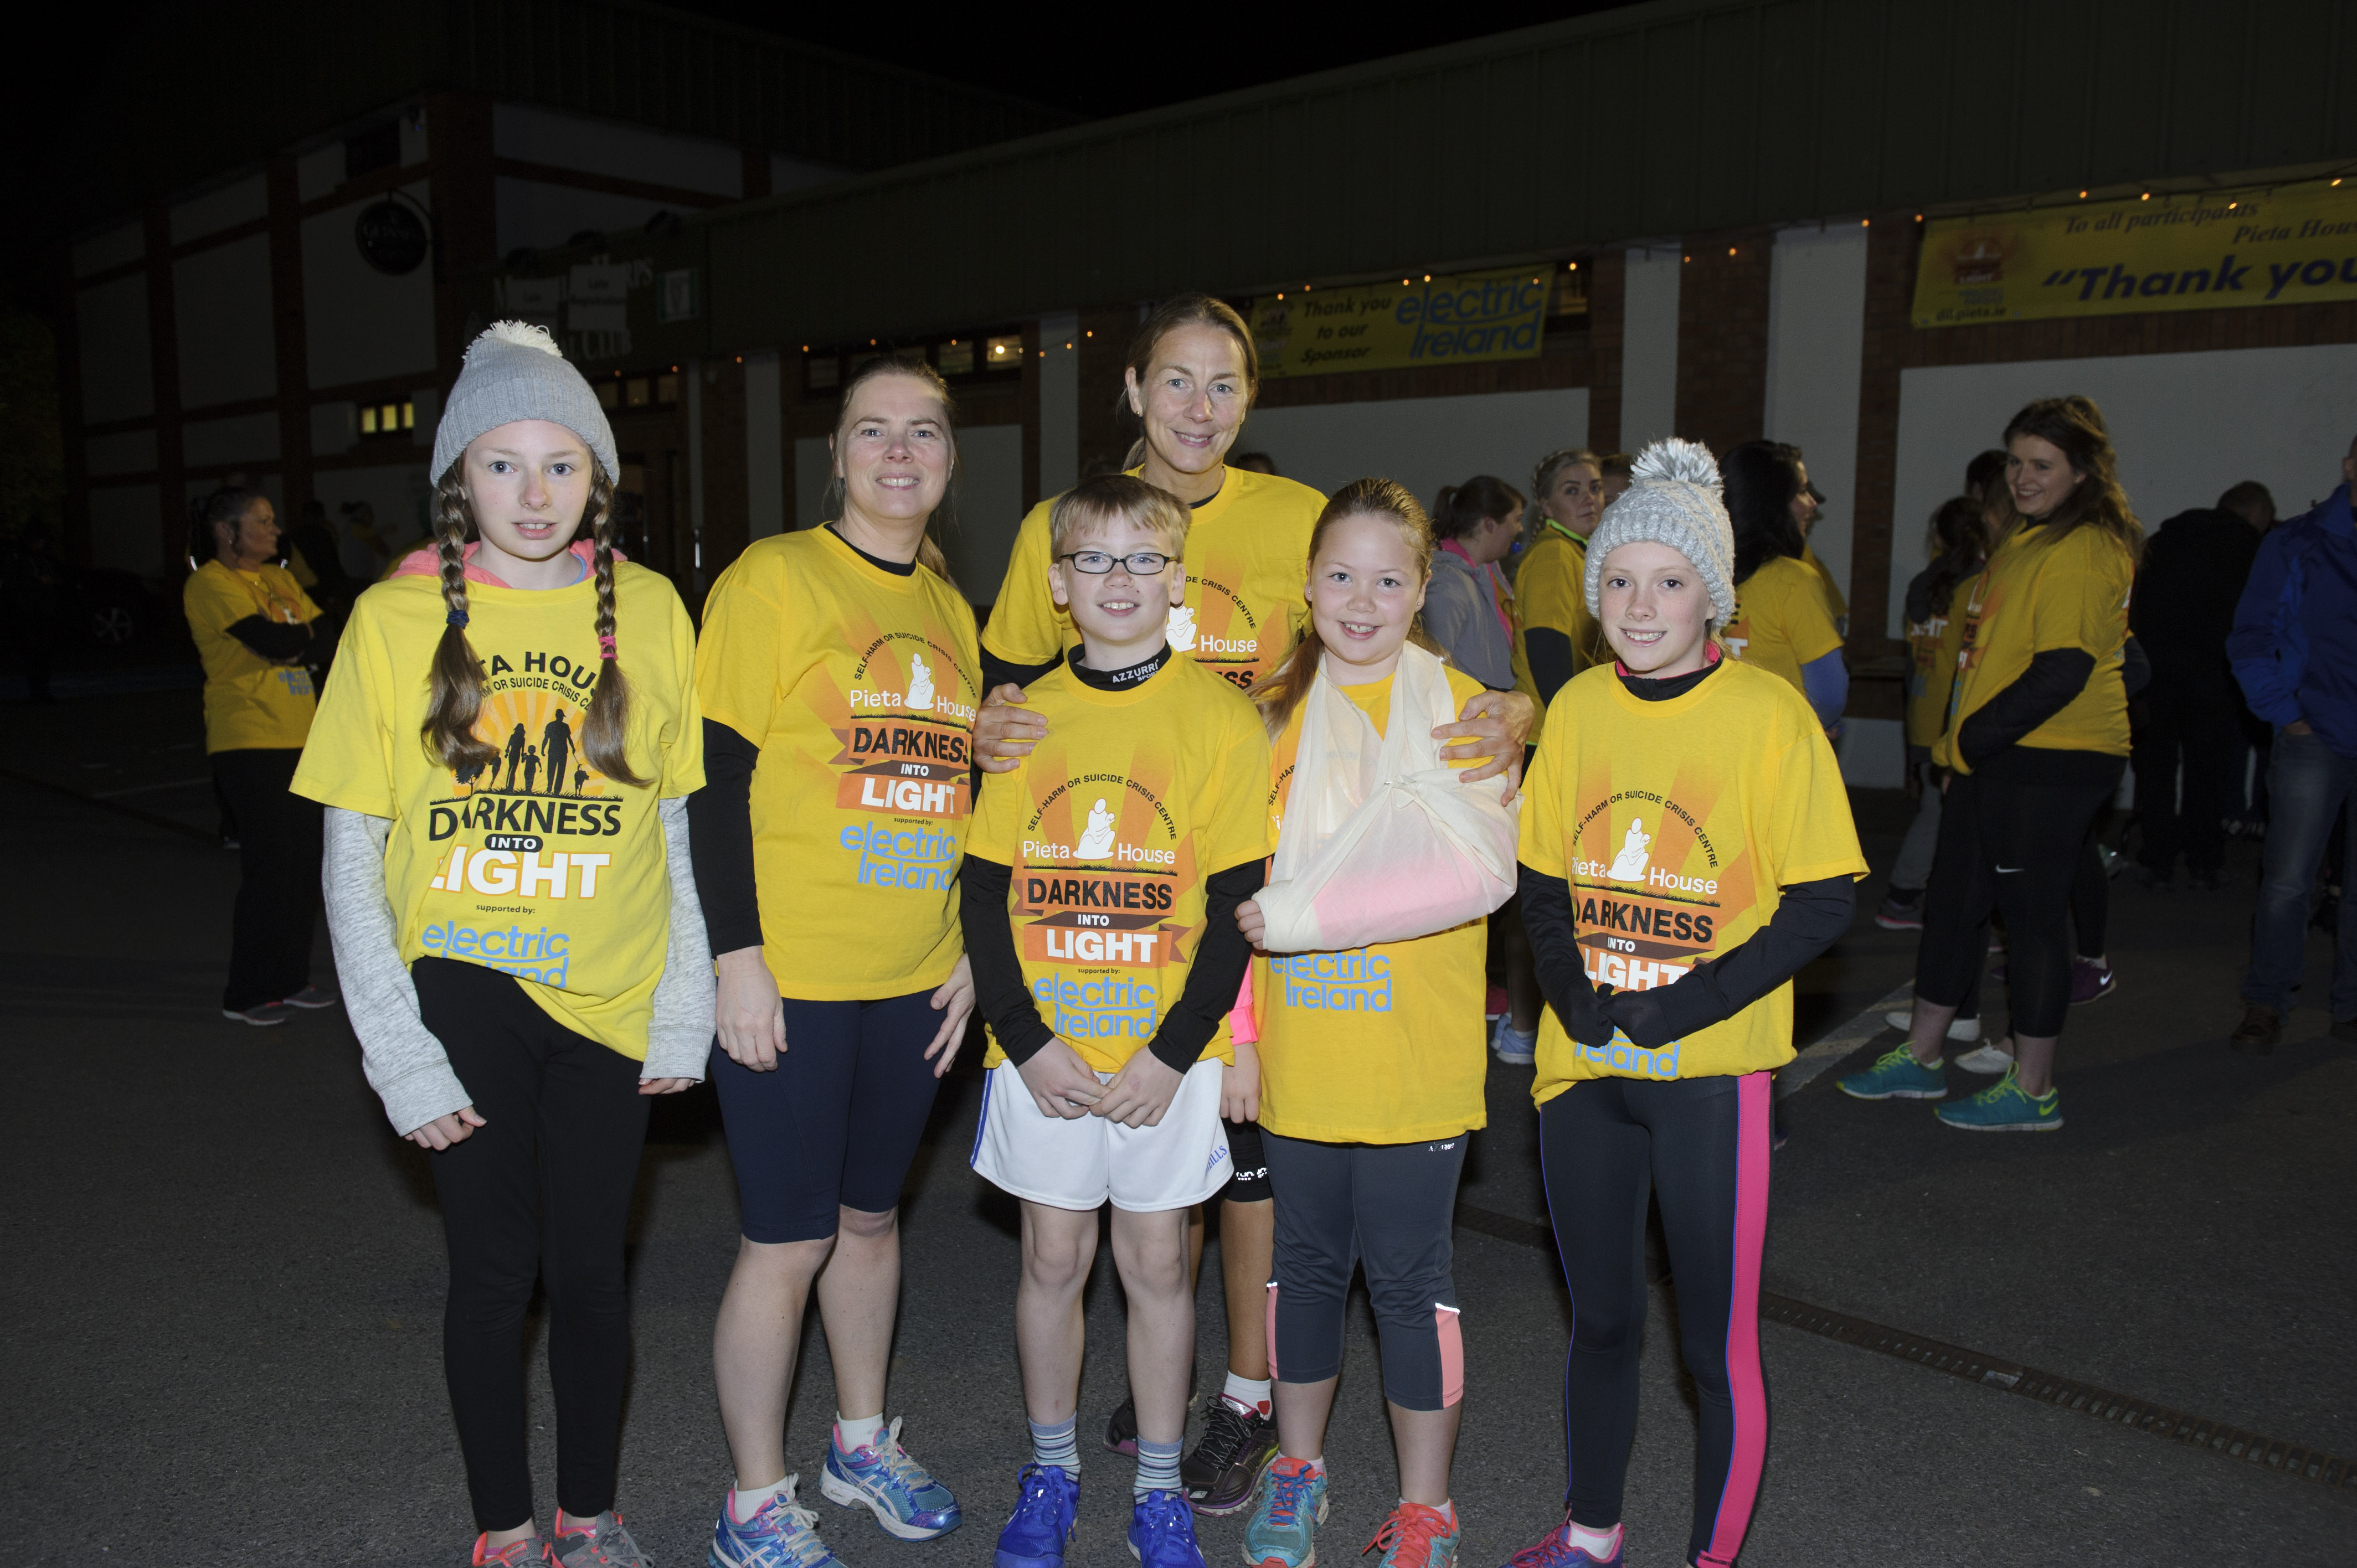 At the Monaghan Darkness Into Light 5k were (L-R) Megan Prunty, Cheryl McCaffrey, Colin Sheridan, Diane Sheridan, Emily Sheridan and Hannah McCaffrey. ©Rory Geary/The Northern Standard